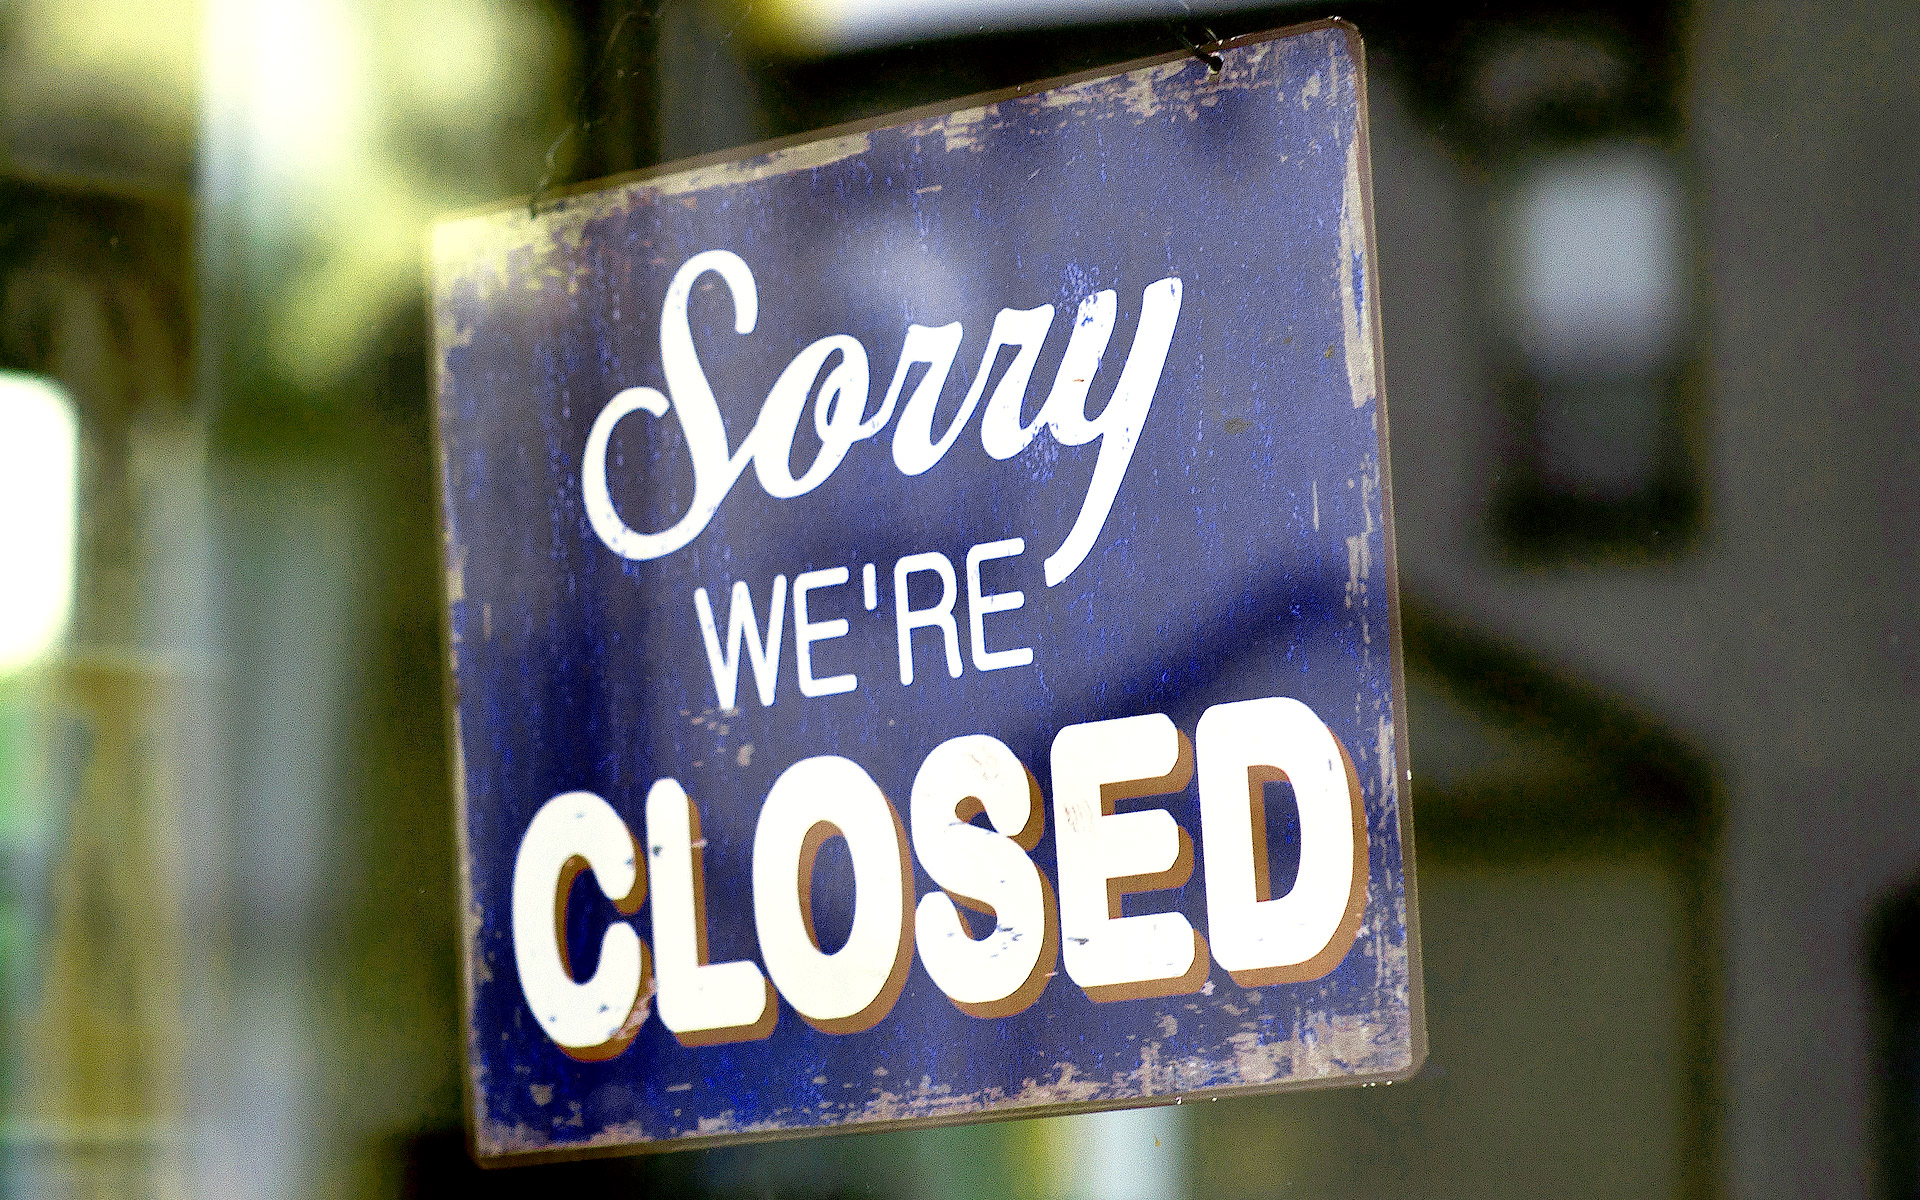 75 crypto exchanges have closed down so far in 2020